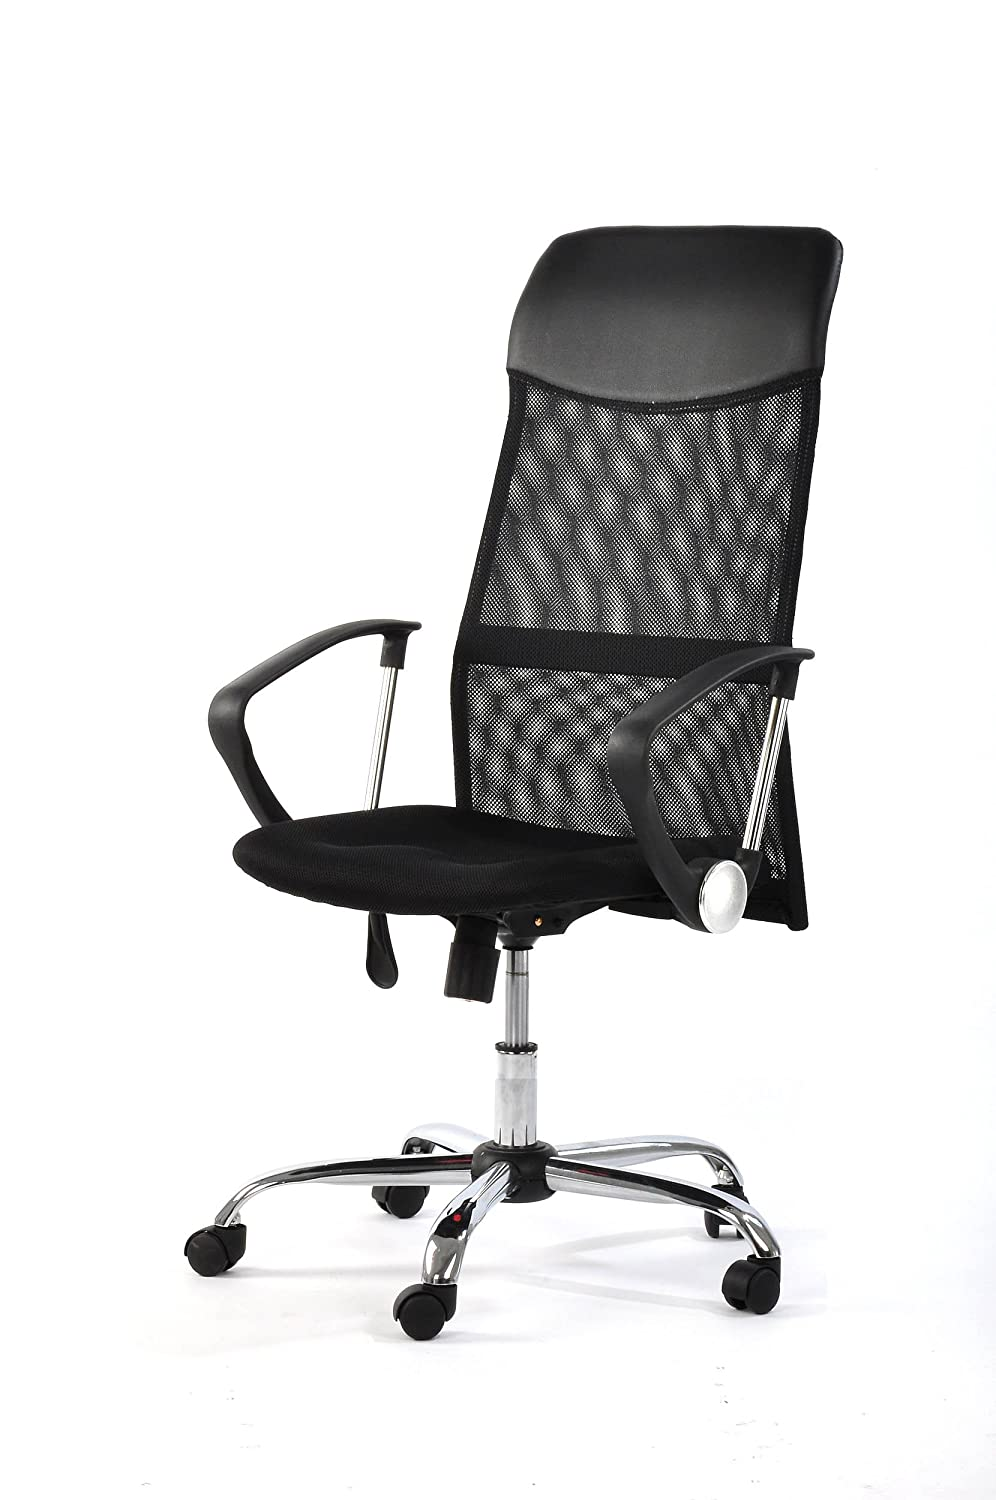 Best office chair 2016 - Furniturer High Back Mesh Ergonomic Office Computer Desk Executive Chair Black